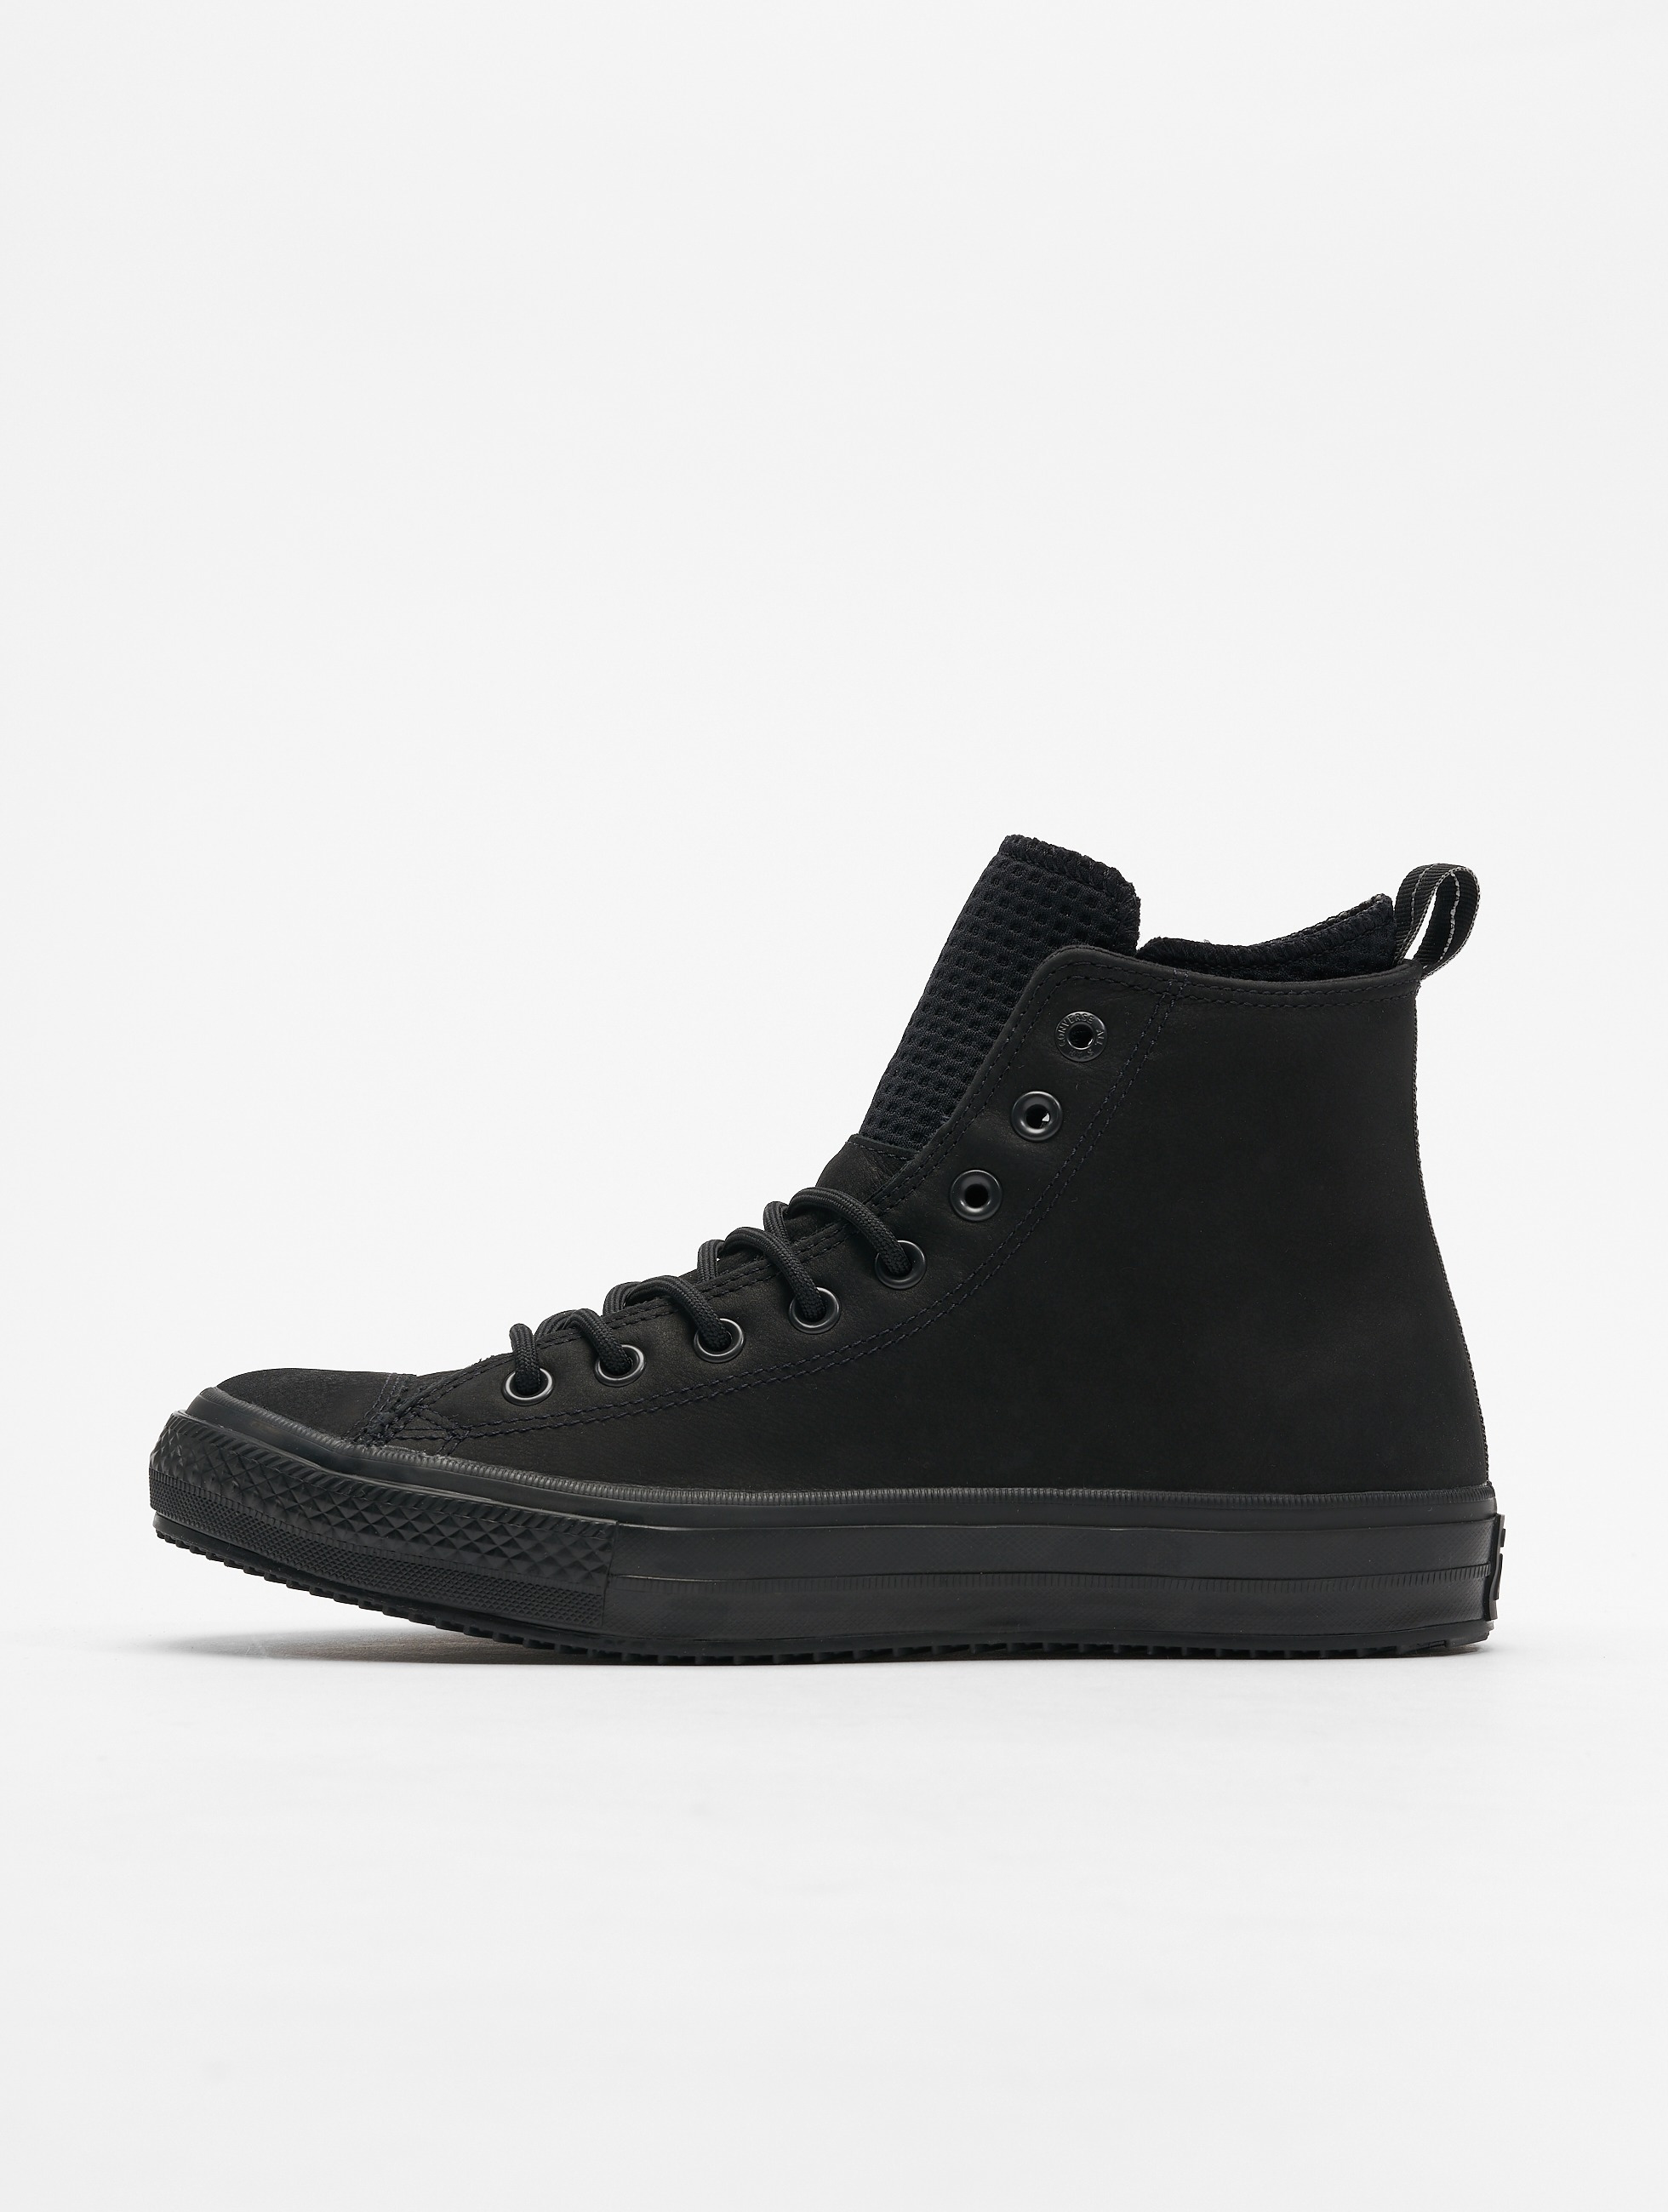 18554cfe1b7 Converse schoen / sneaker Chuck Taylor All Star WP Boot Hi in zwart 506217